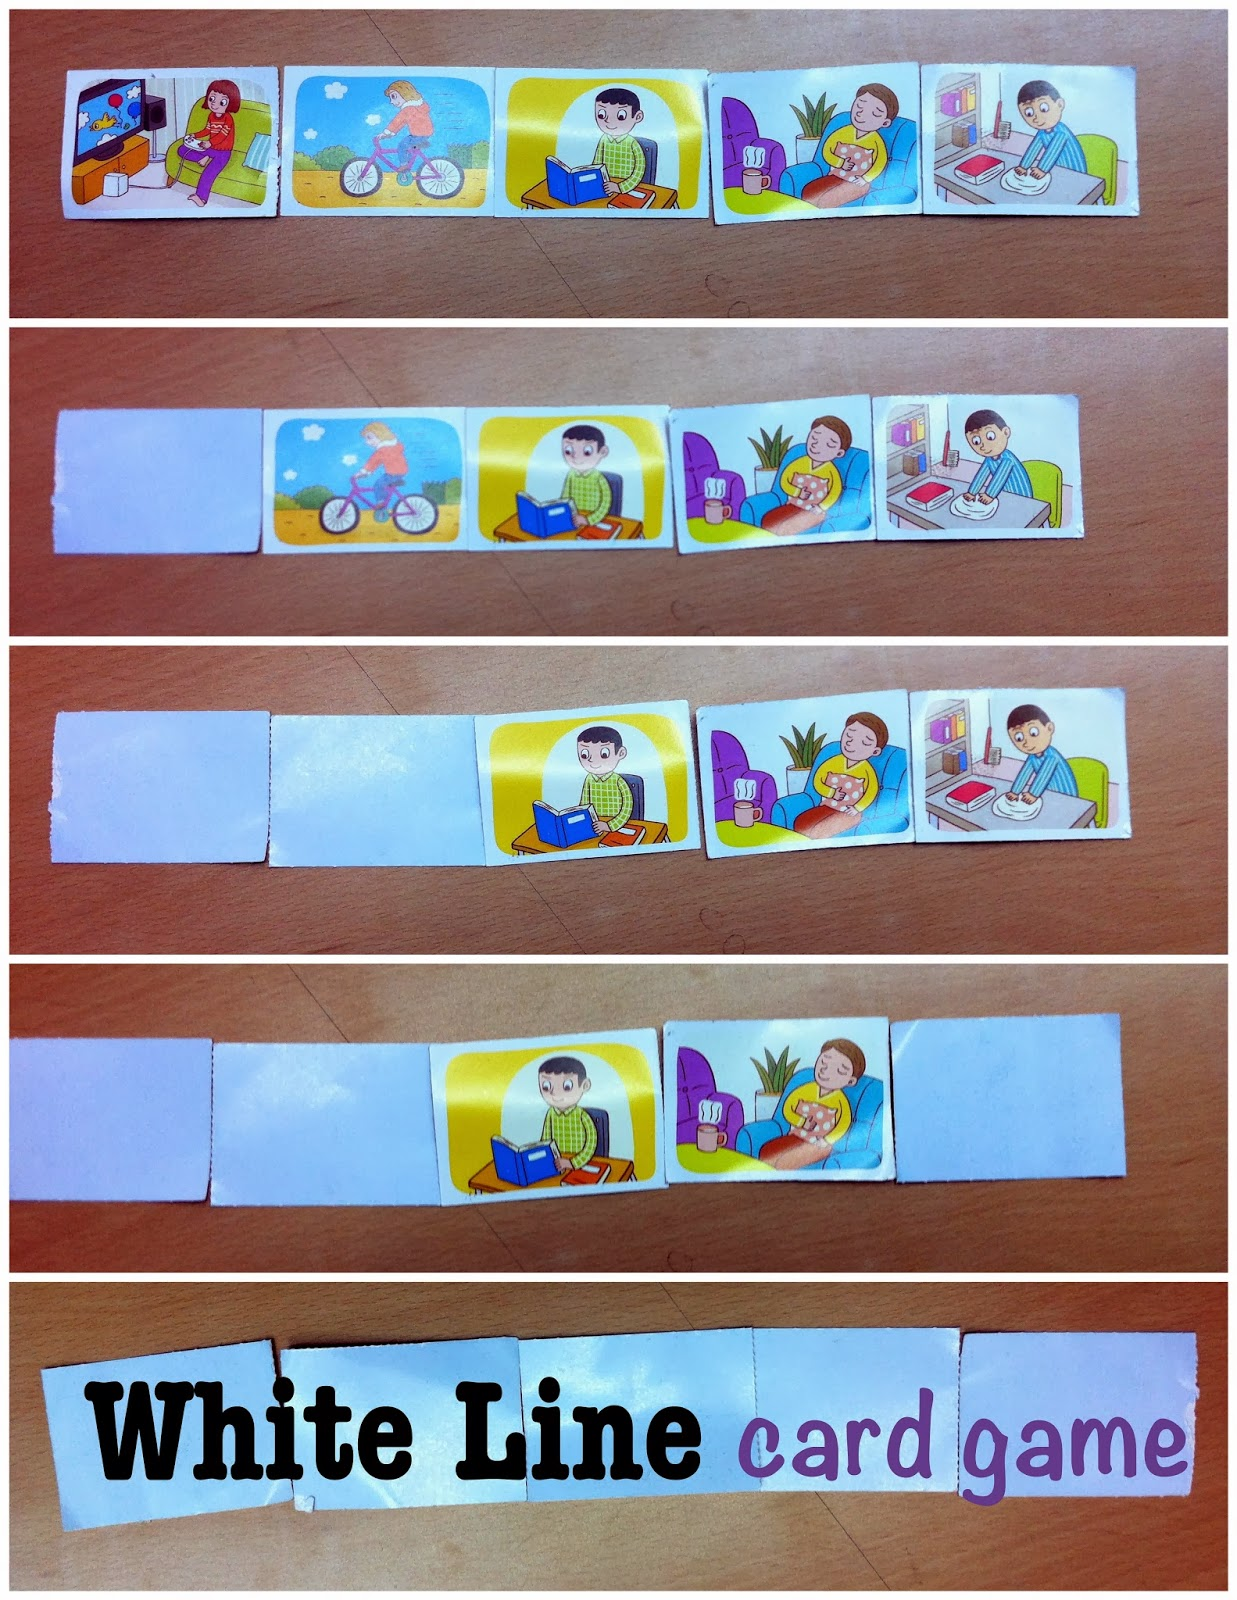 ESL elementary white line card game